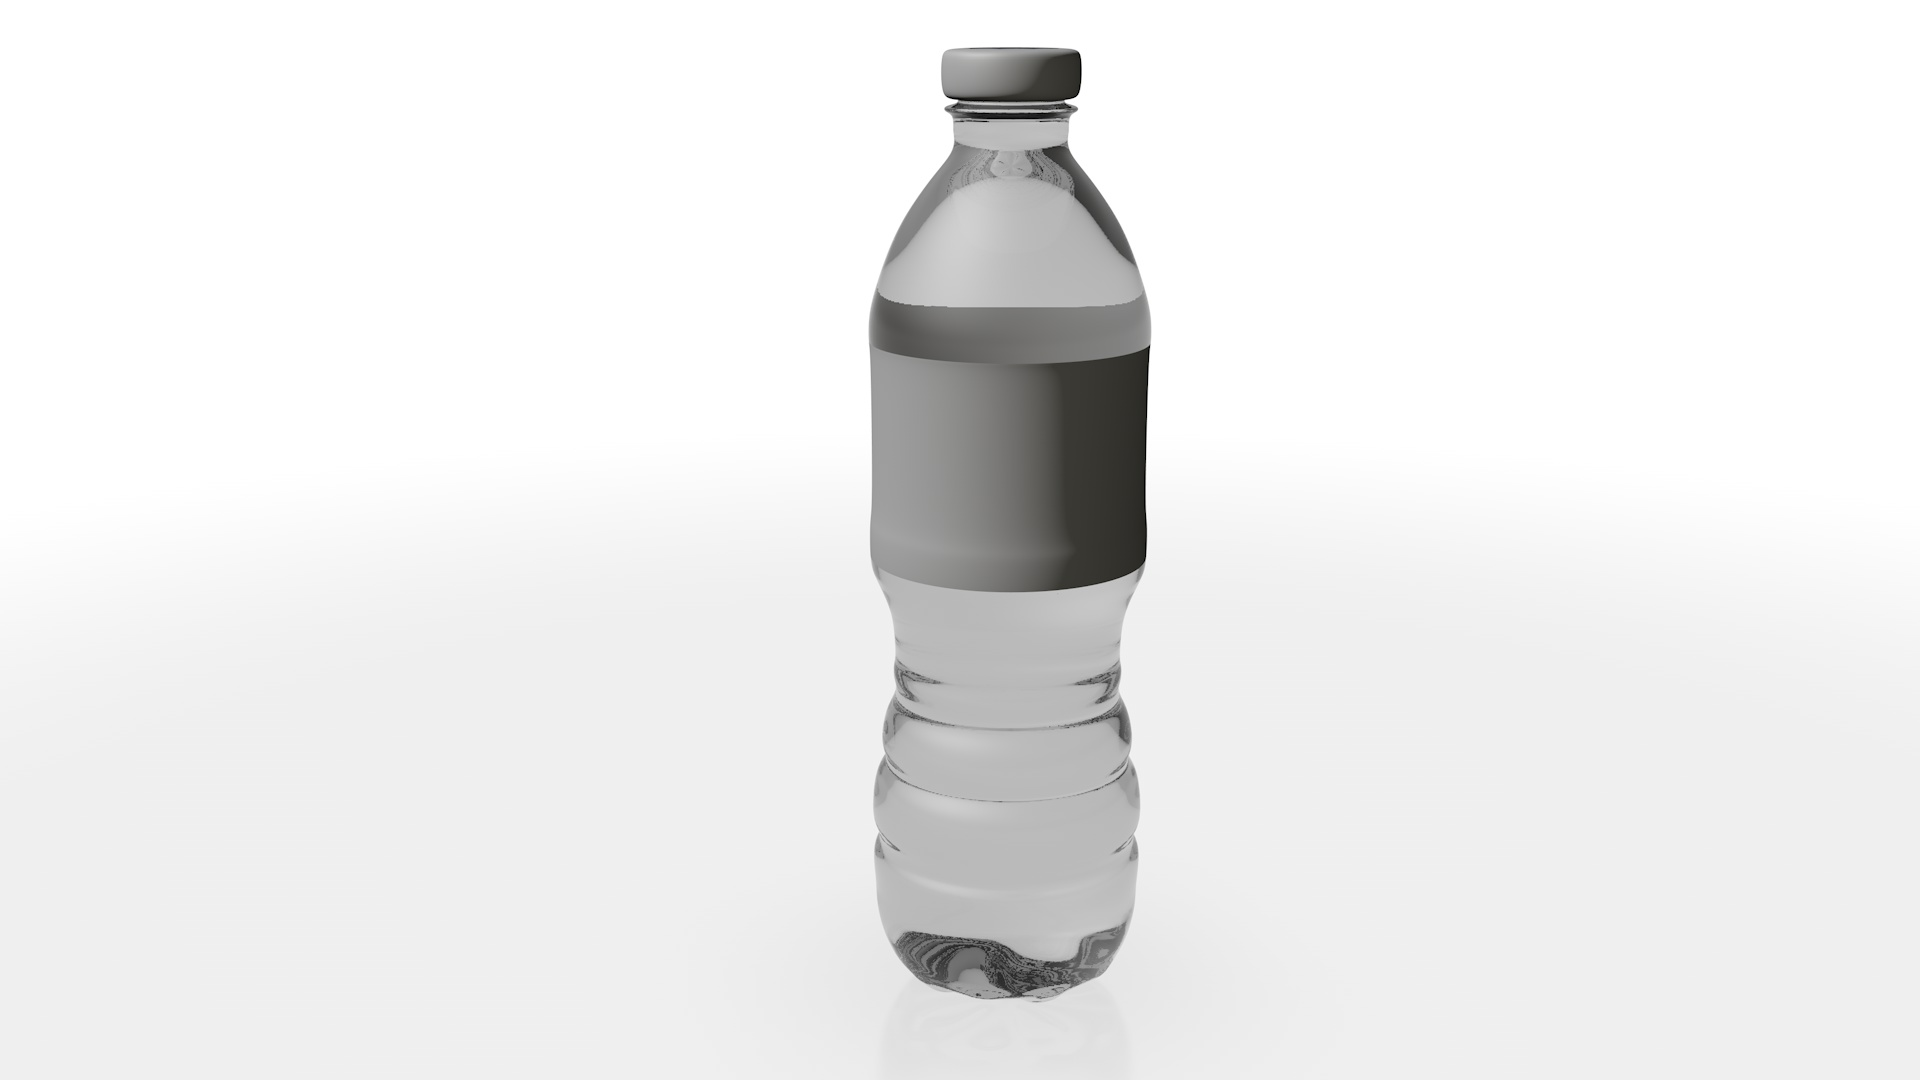 3D model of single water bottle.